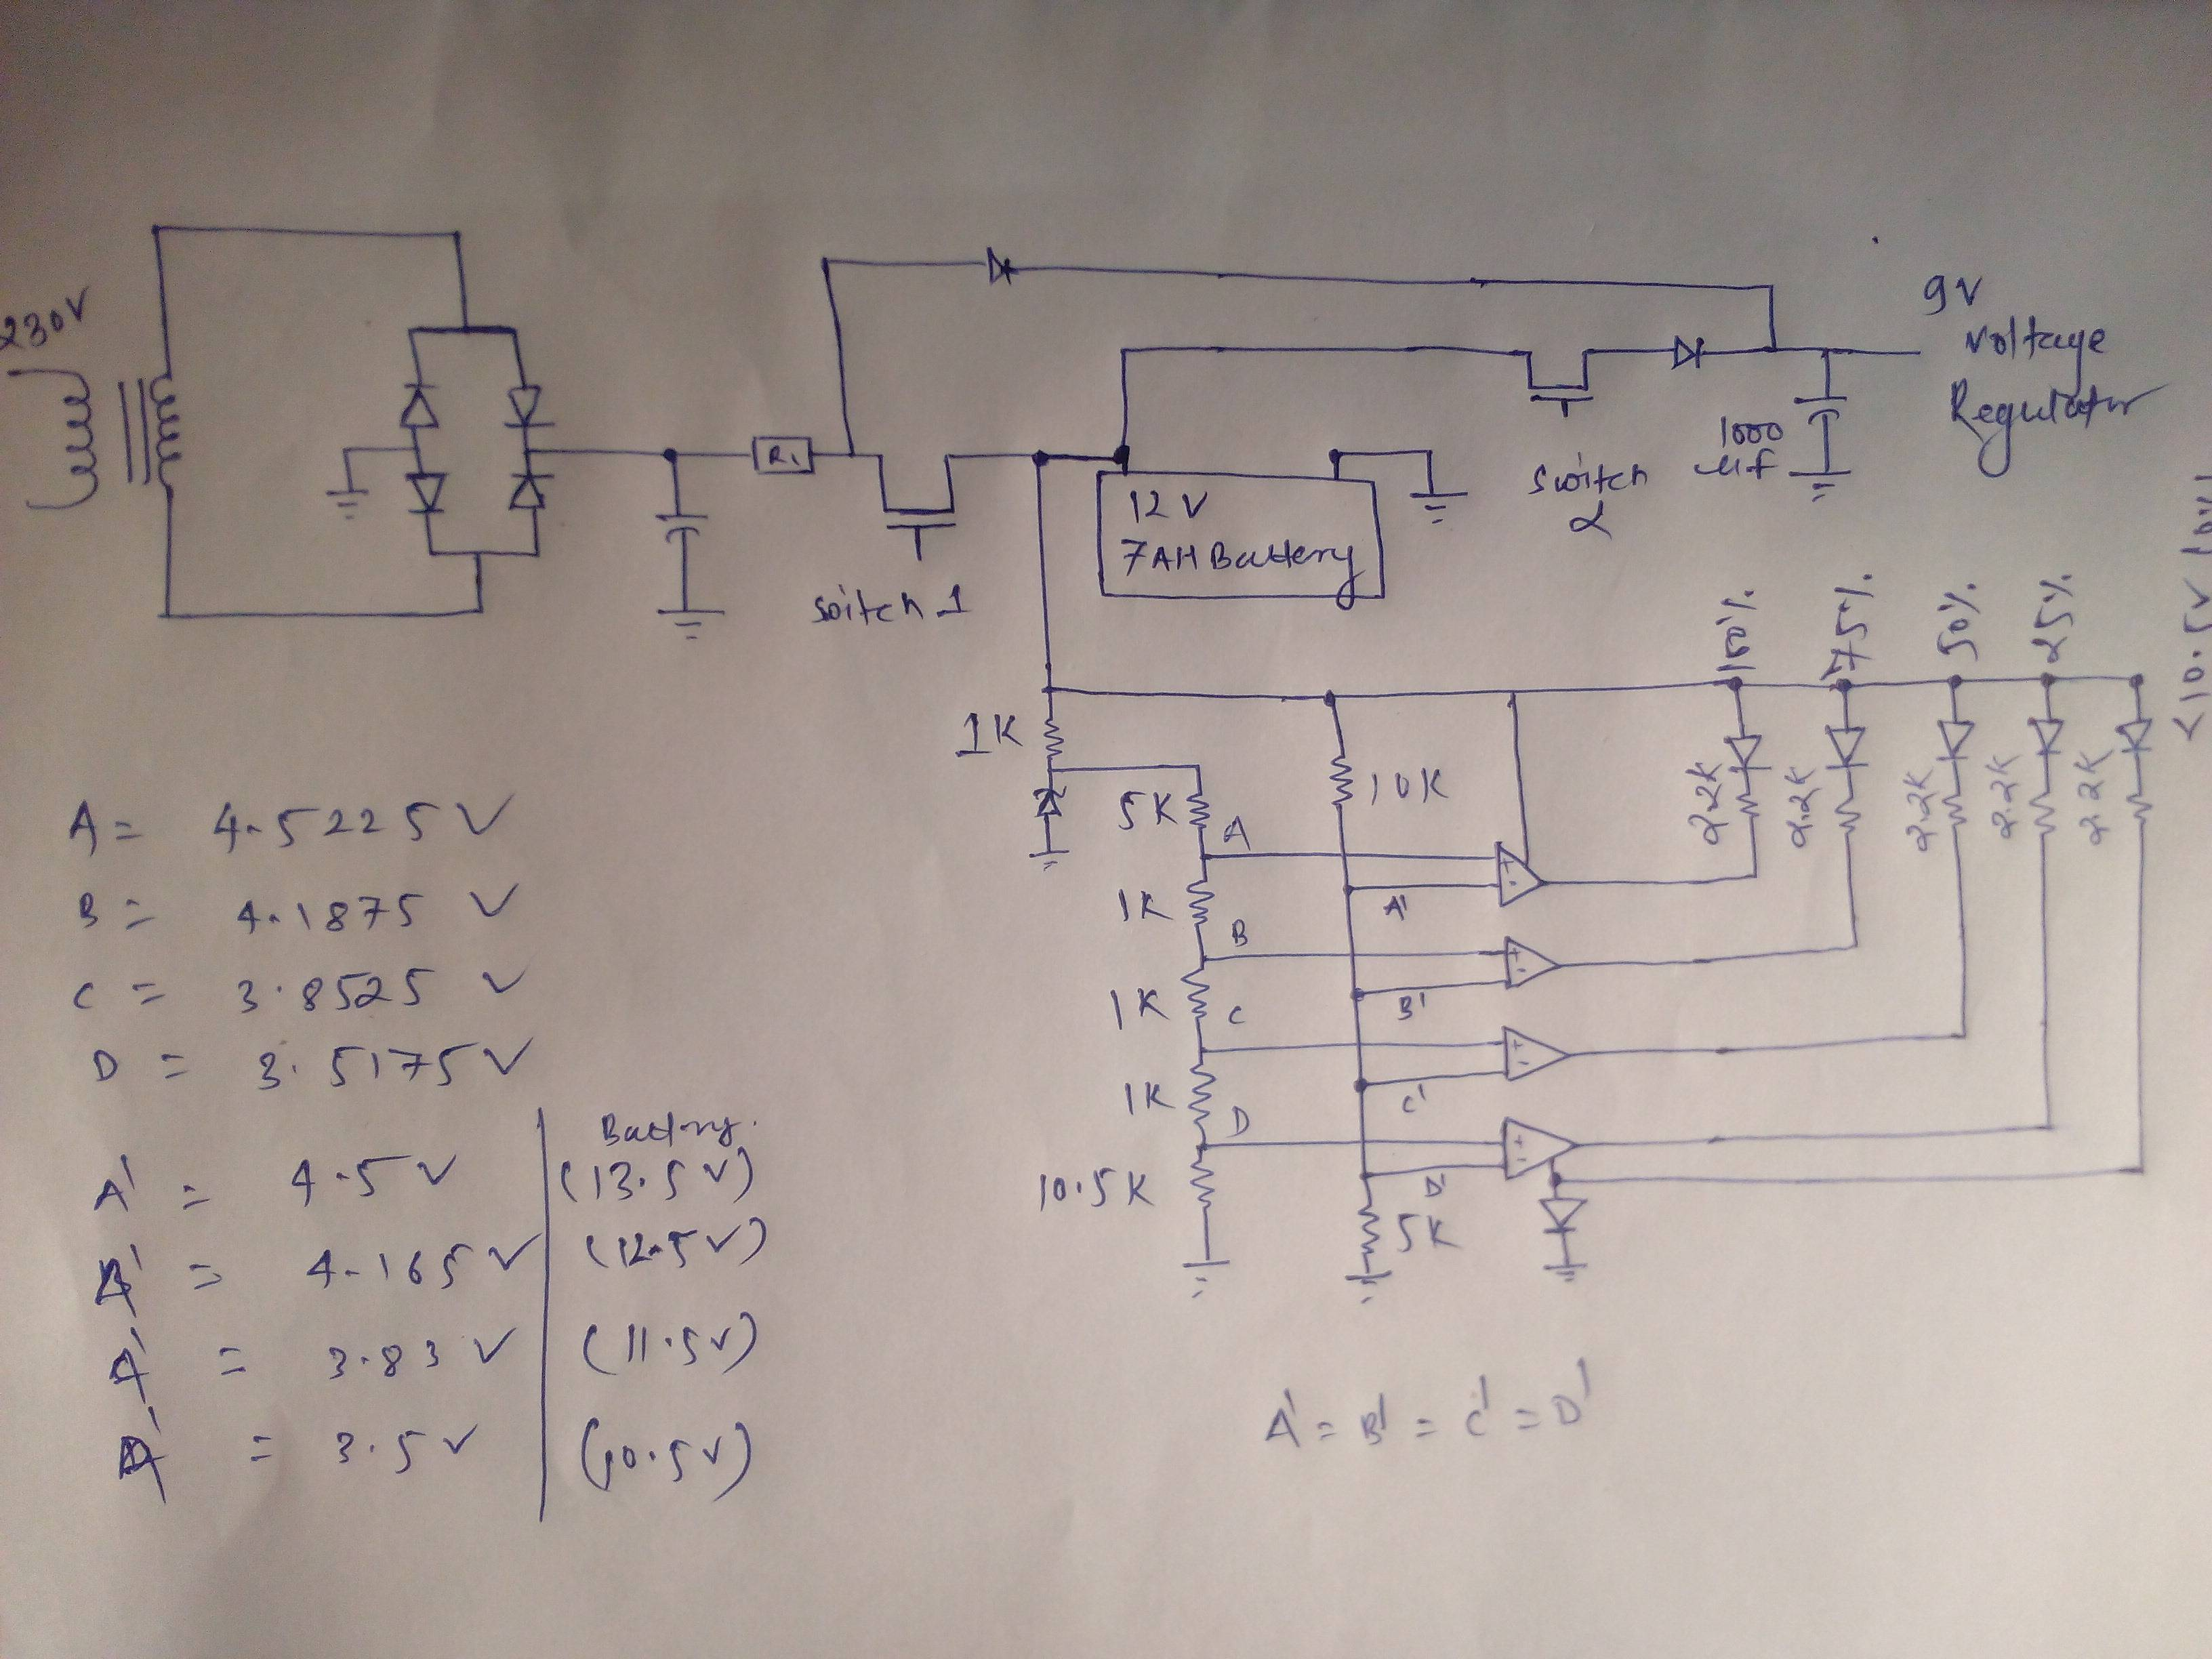 This Is A Mains 230v Ac Voltage Indicator And Is A Live Circuit So